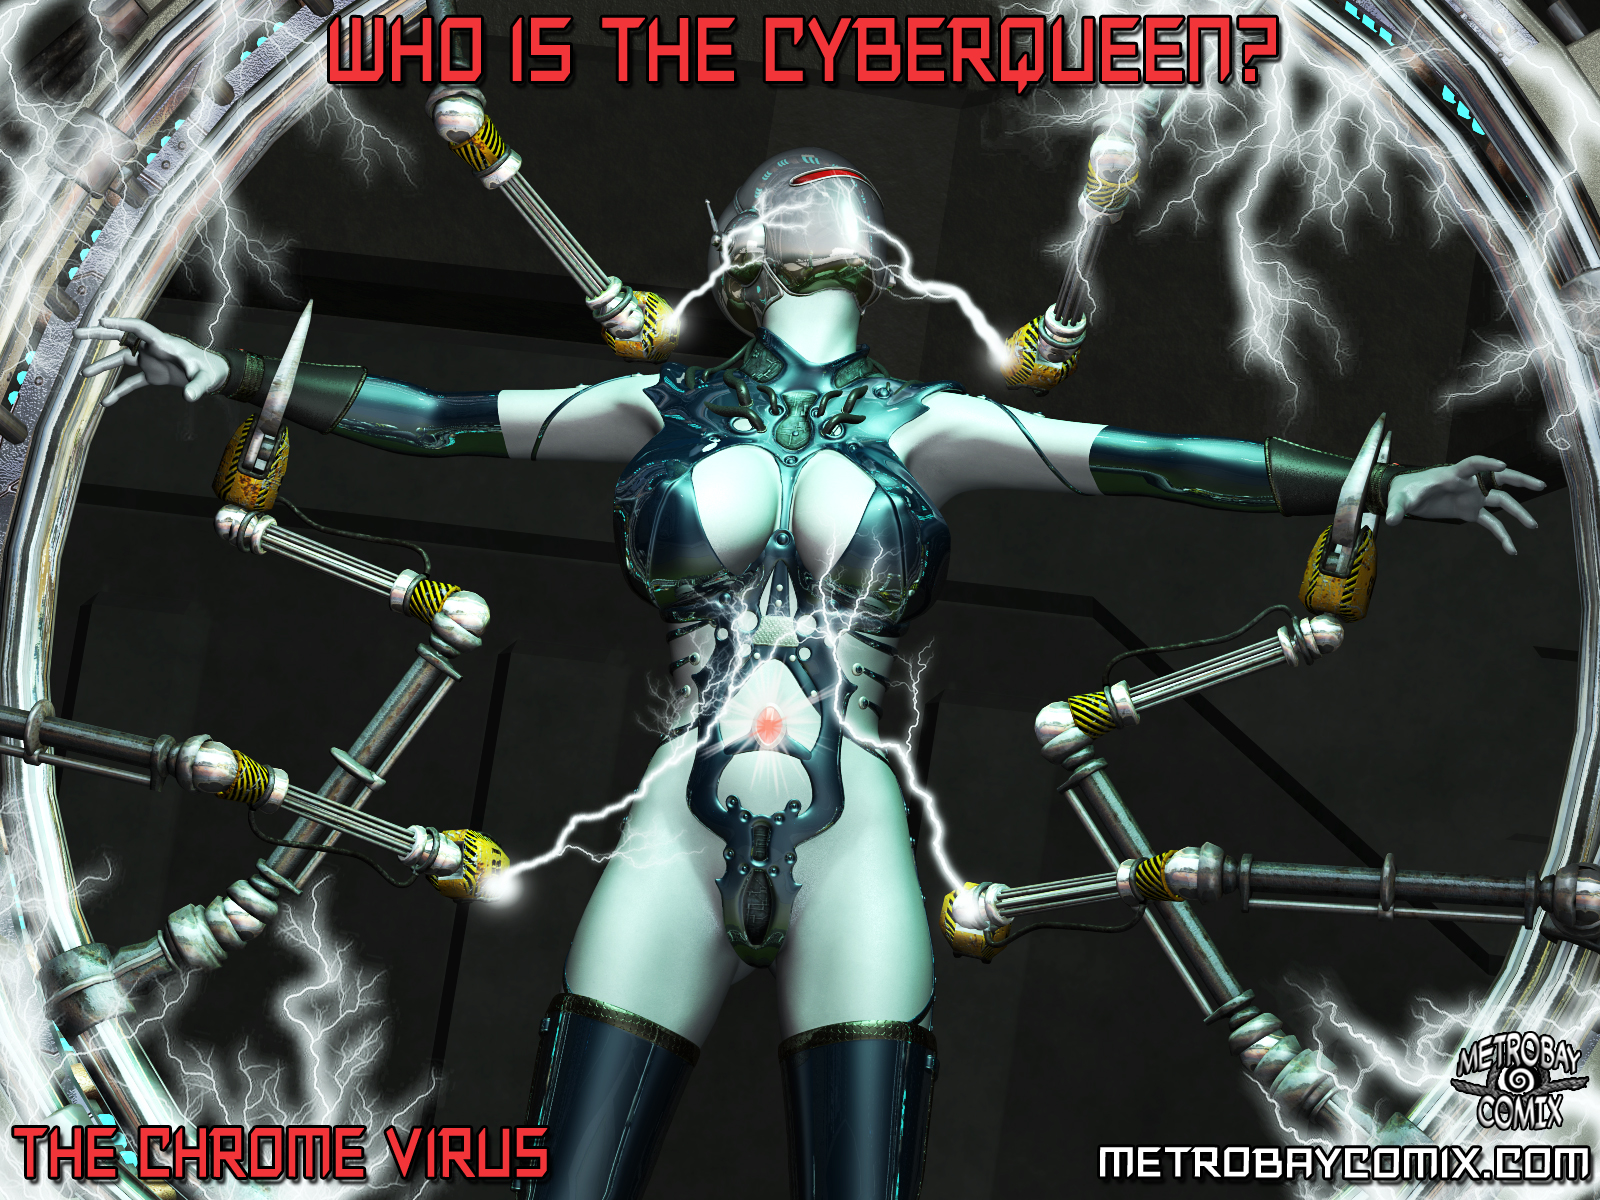 The Chrome Virus - CyberQueen promo by Doctor-Robo